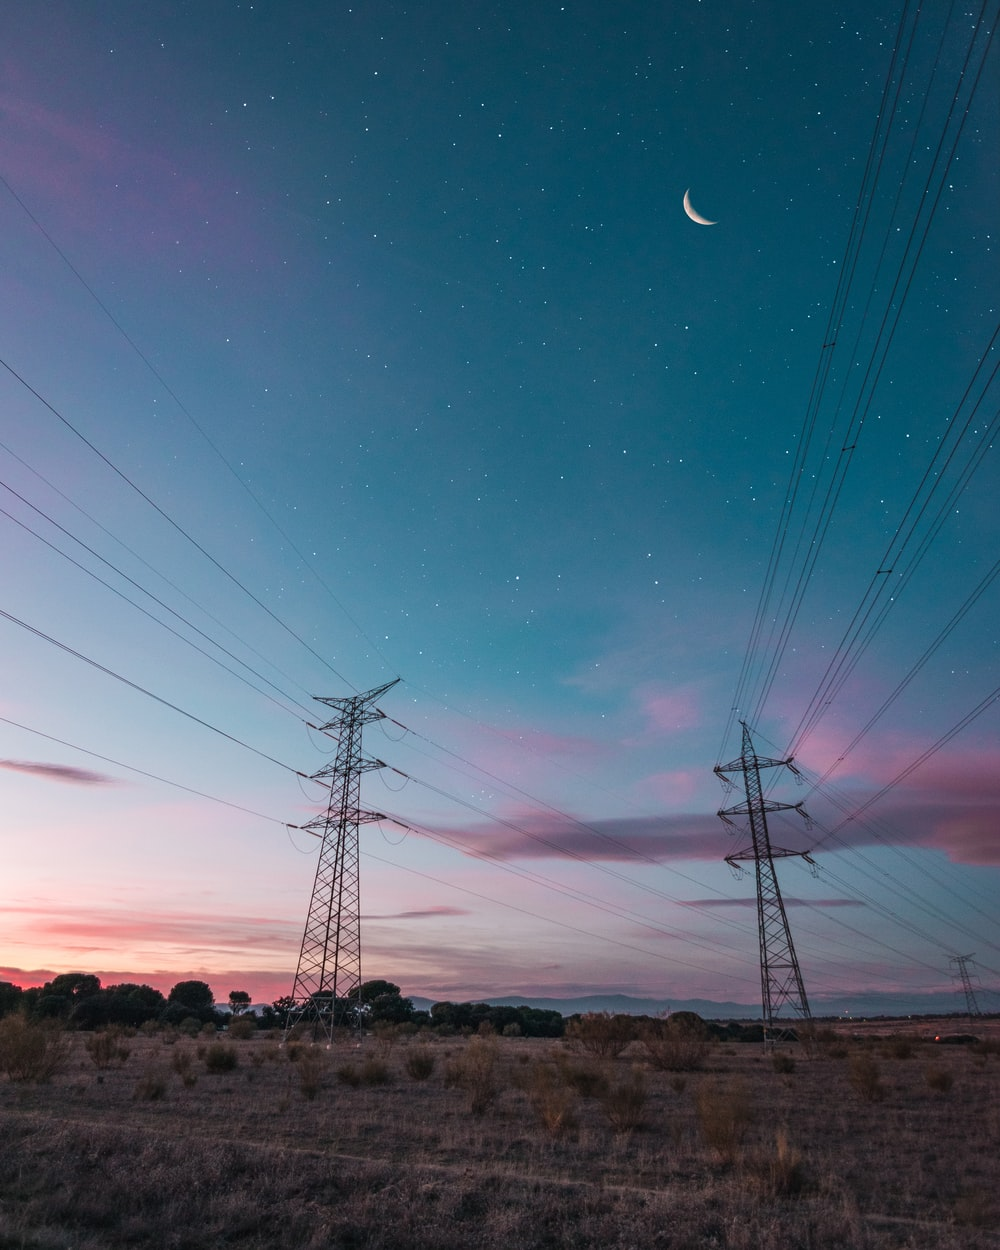 black transmission towers under clear night sky